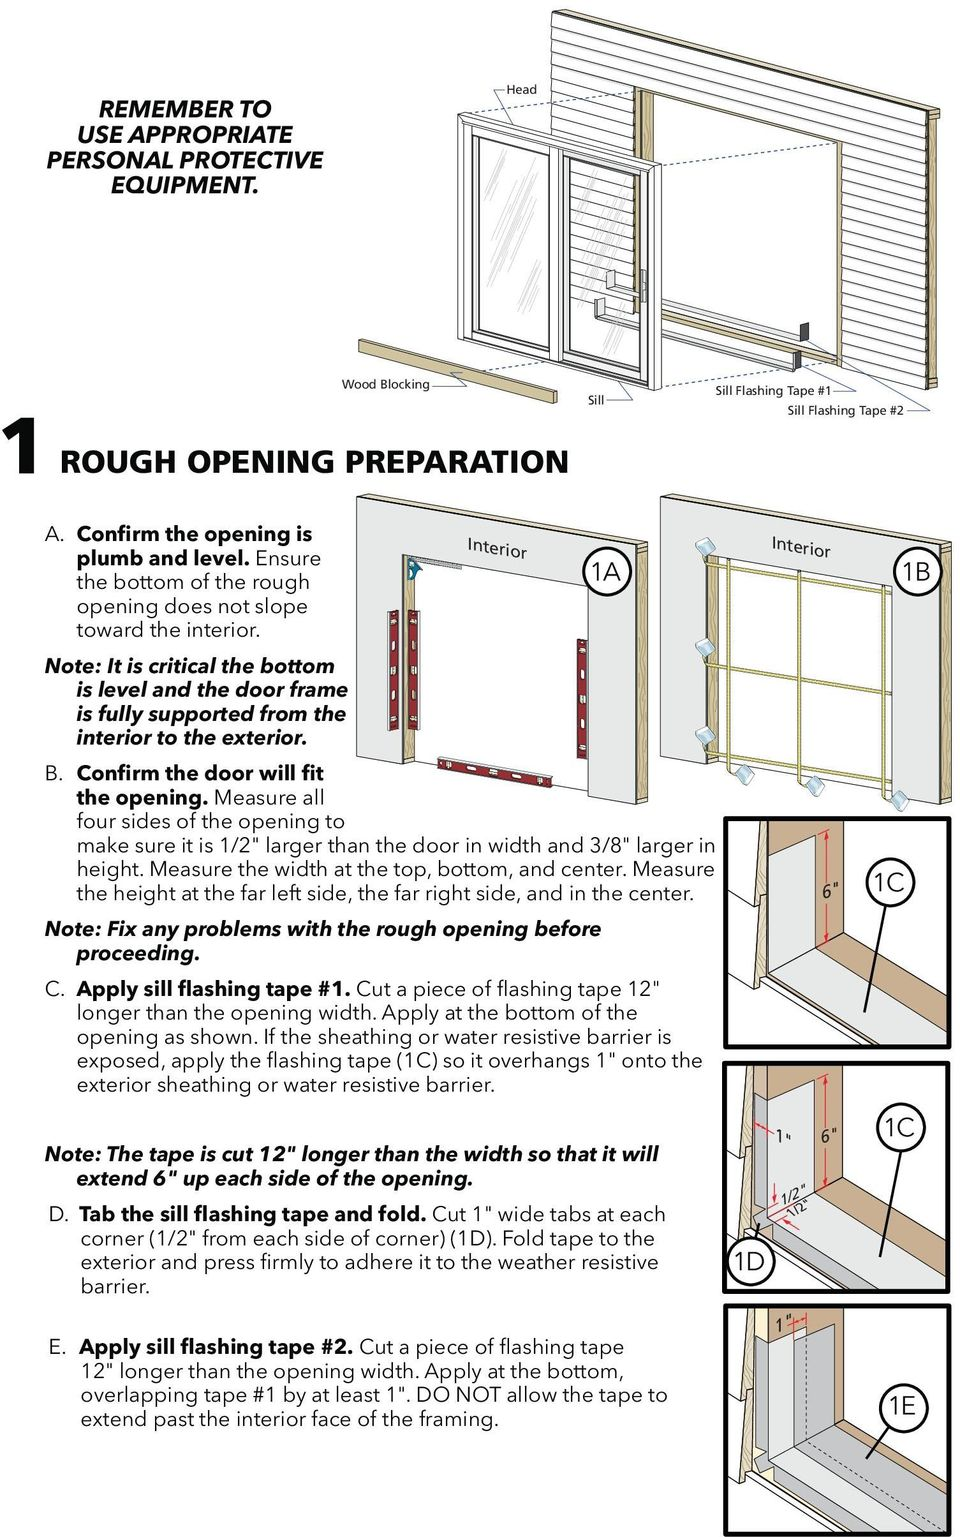 "Confirm the door will fit the opening. Measure all four sides of the opening to make sure it is 1/2"" larger than the door in width and 3/8"" larger in height."